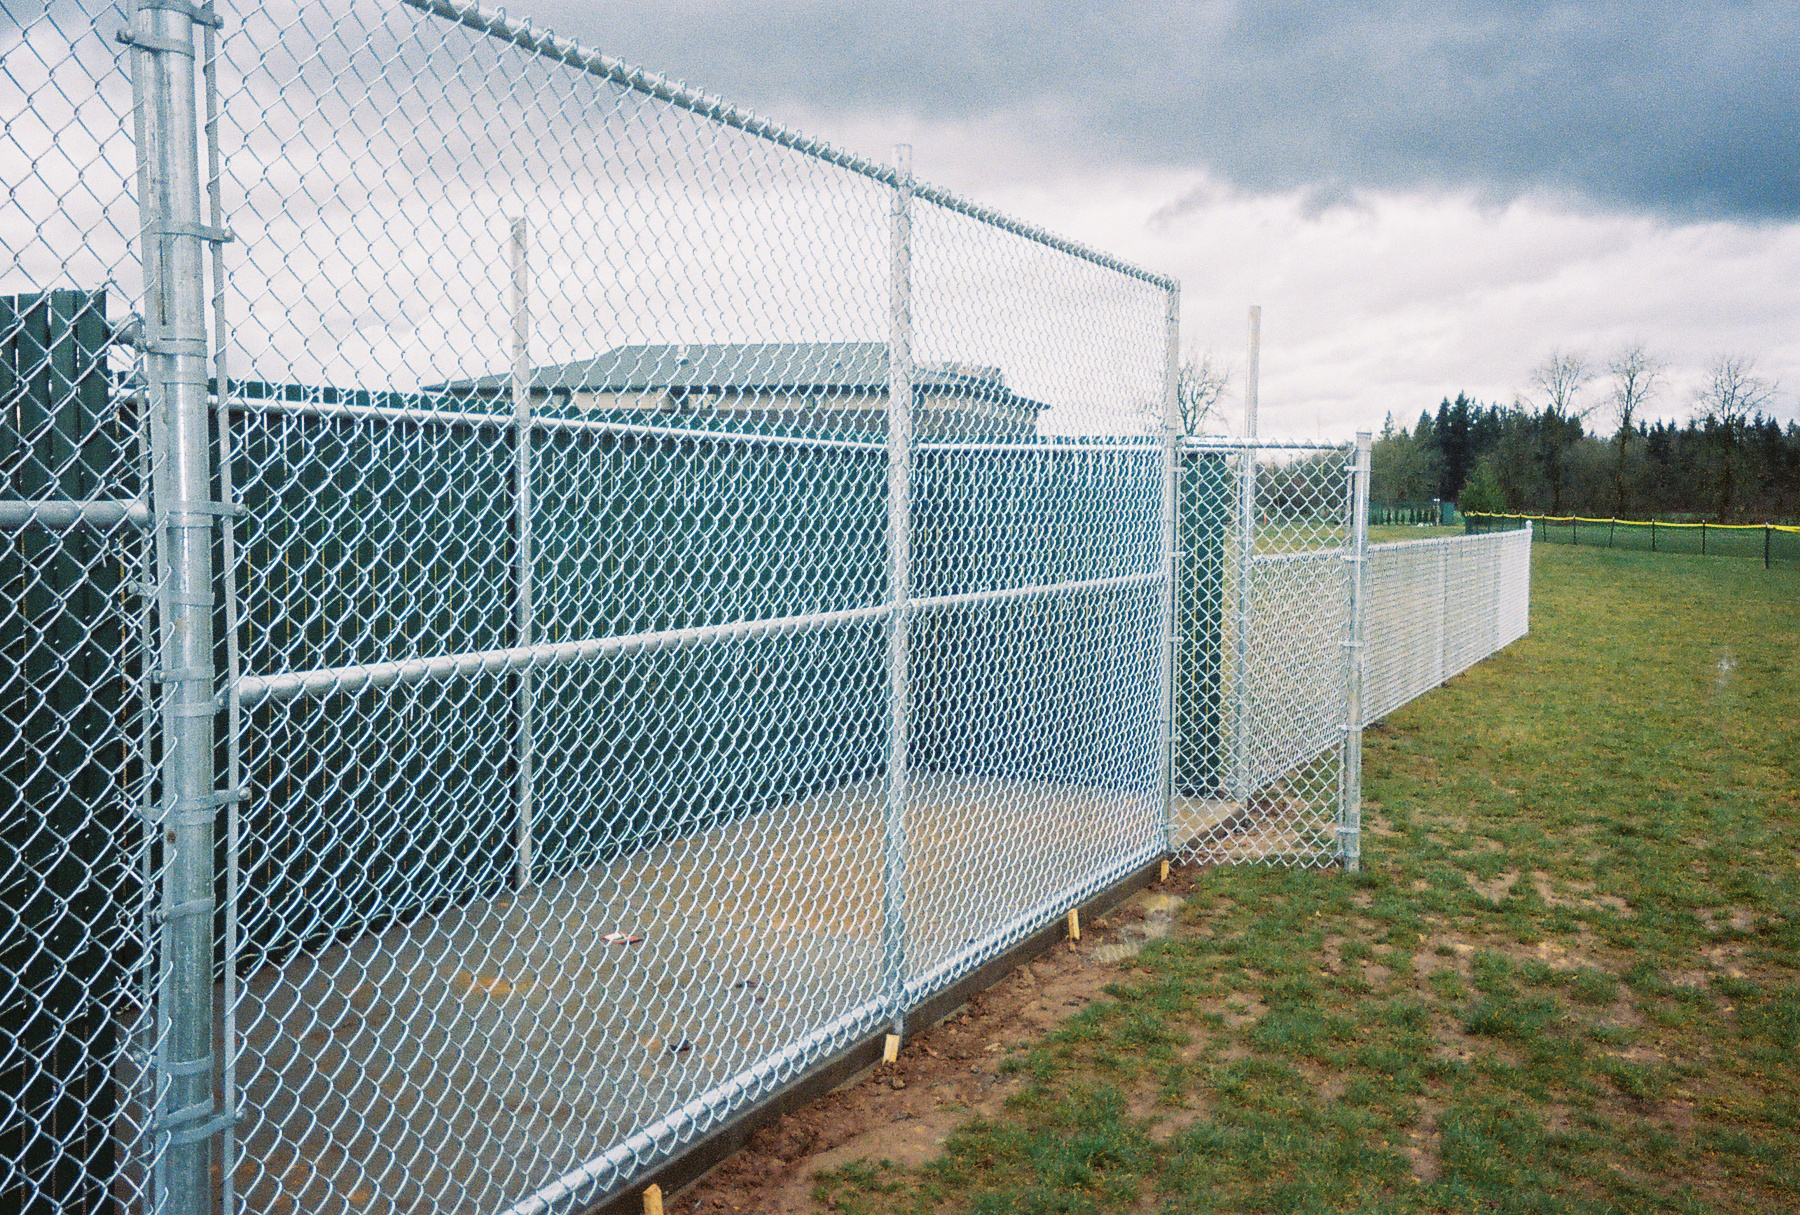 Galvanized Chain Link pitcher warm area again providing safety for players and spectators. Contact Vancouver Washington's Best Fence Builders. The Fenceman Fence Company installs wood, vinyl, chain link and ornamental iron fences. We also offer materials for the do it yourselfer.